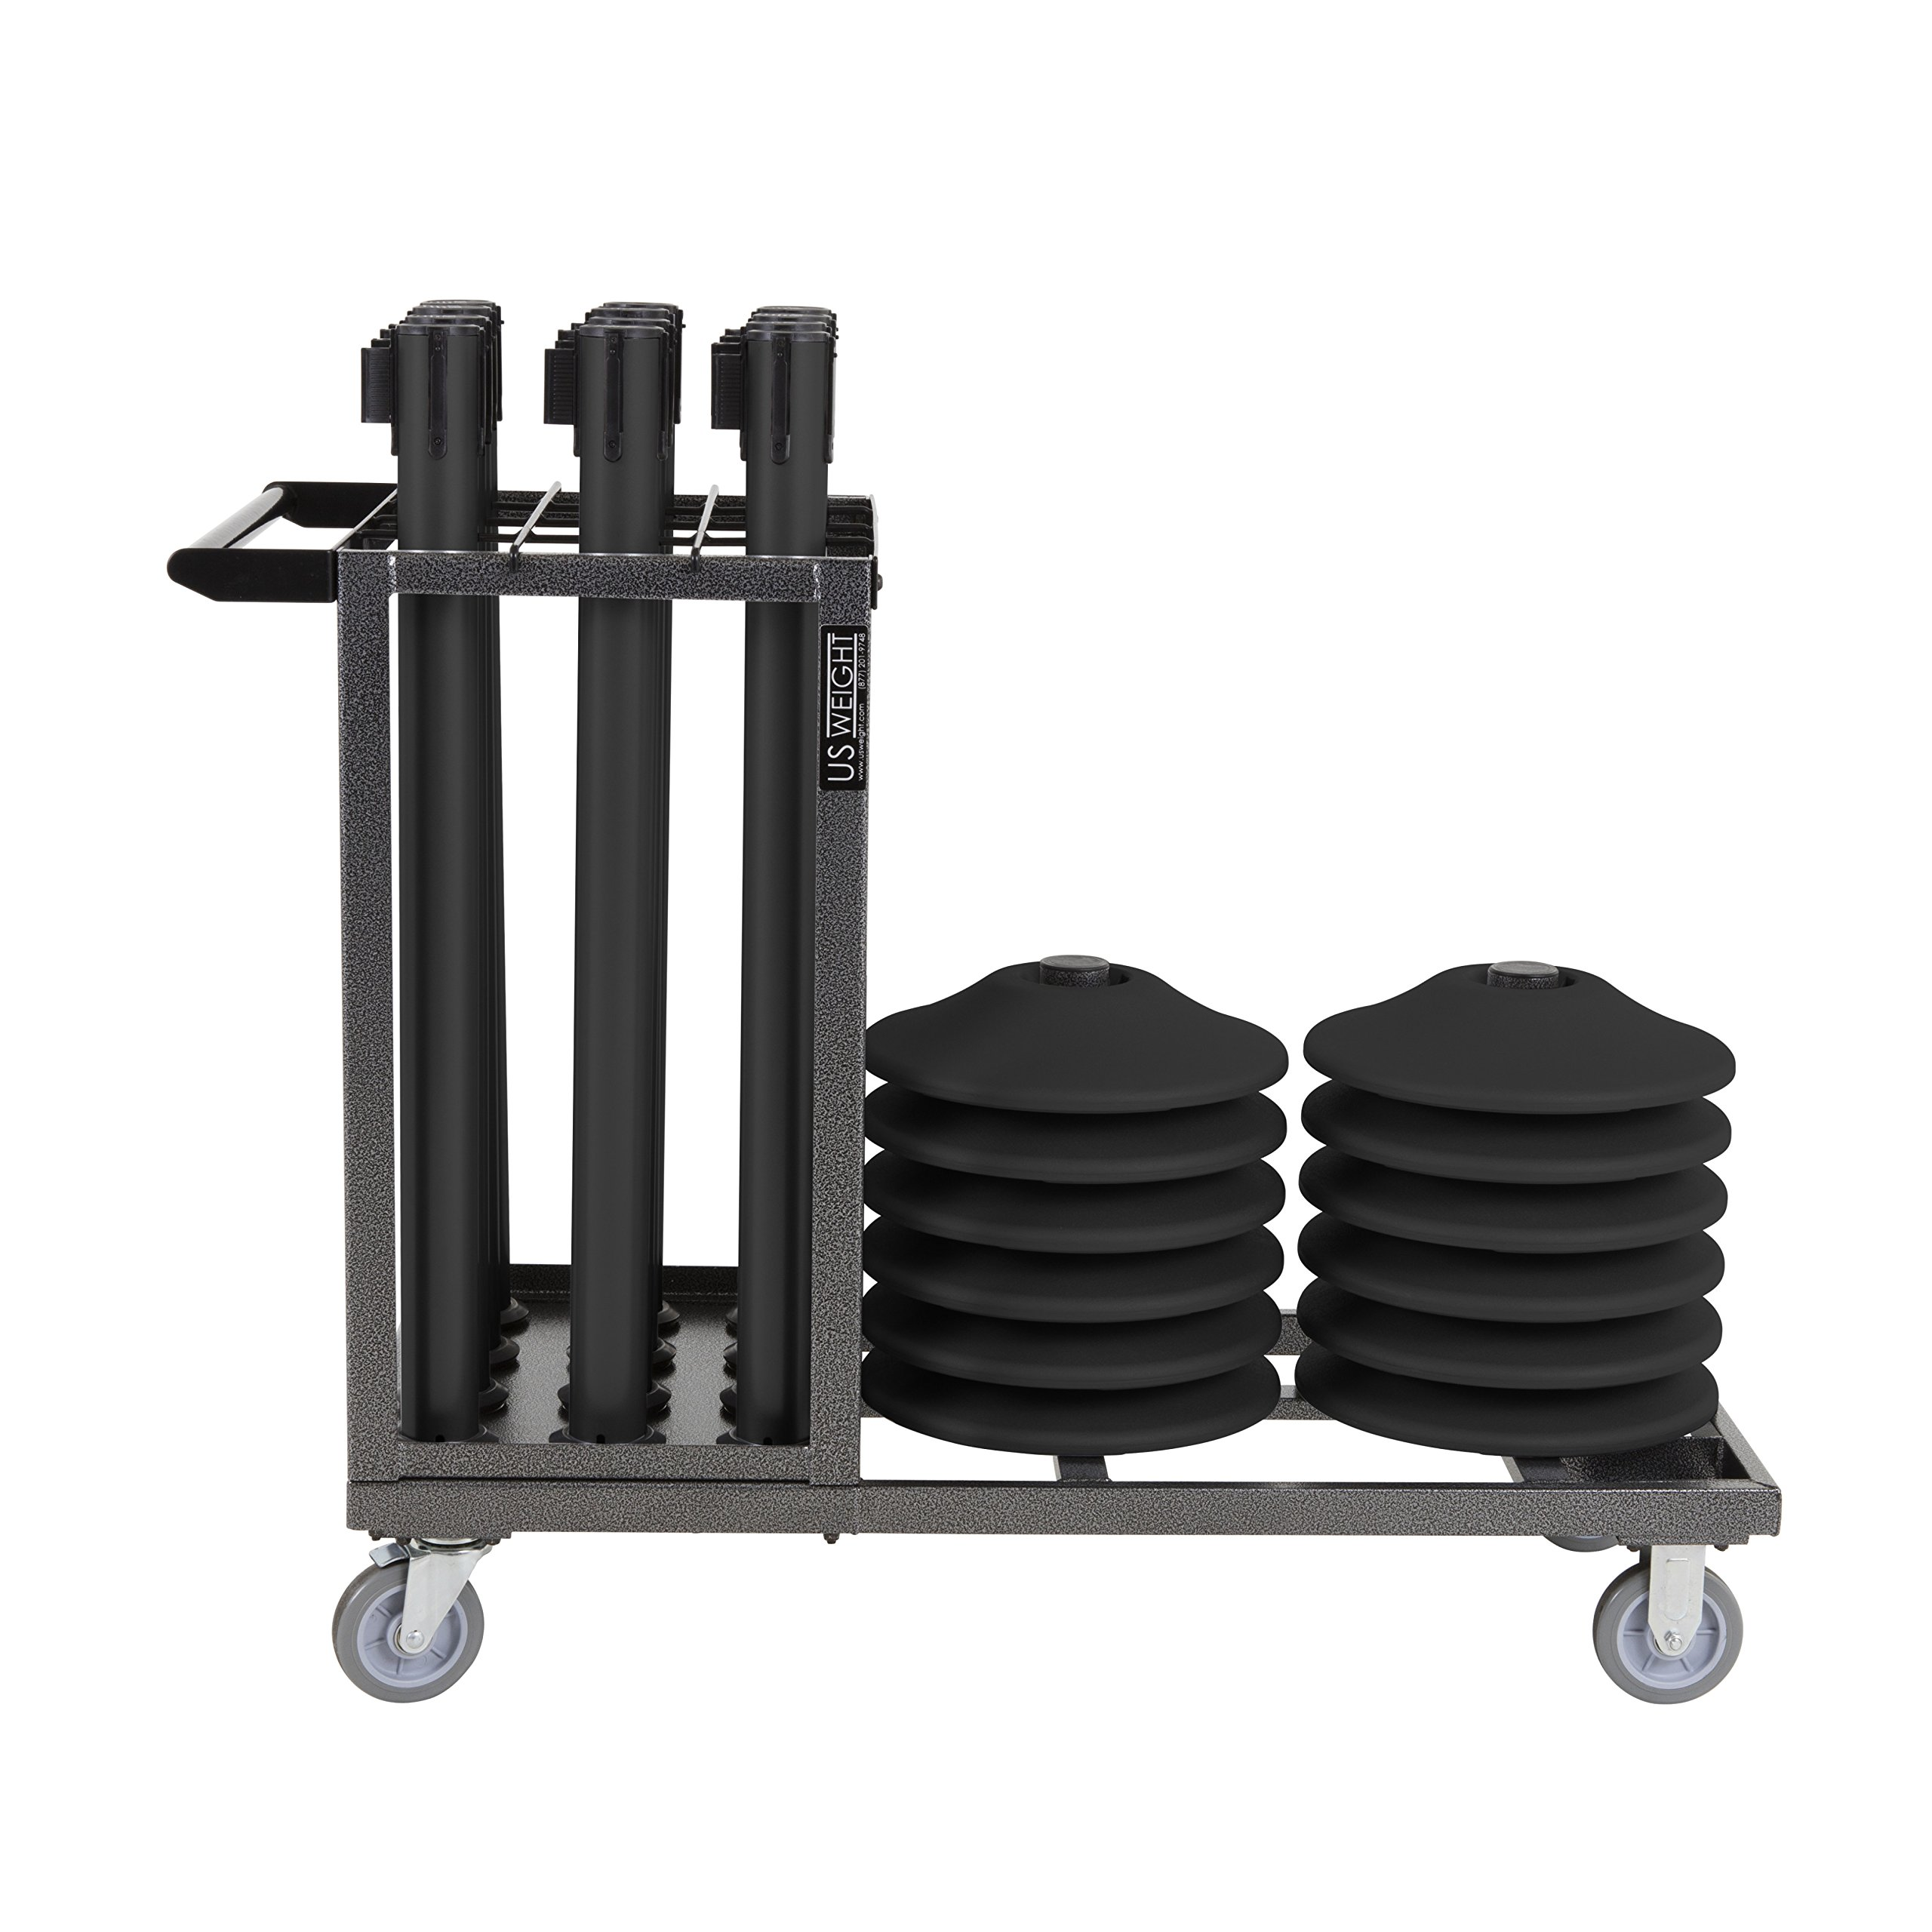 US Weight Statesman Stanchion Cart Kit – 12 Premium Black Steel Stanchions with Cart by US Weight (Image #8)